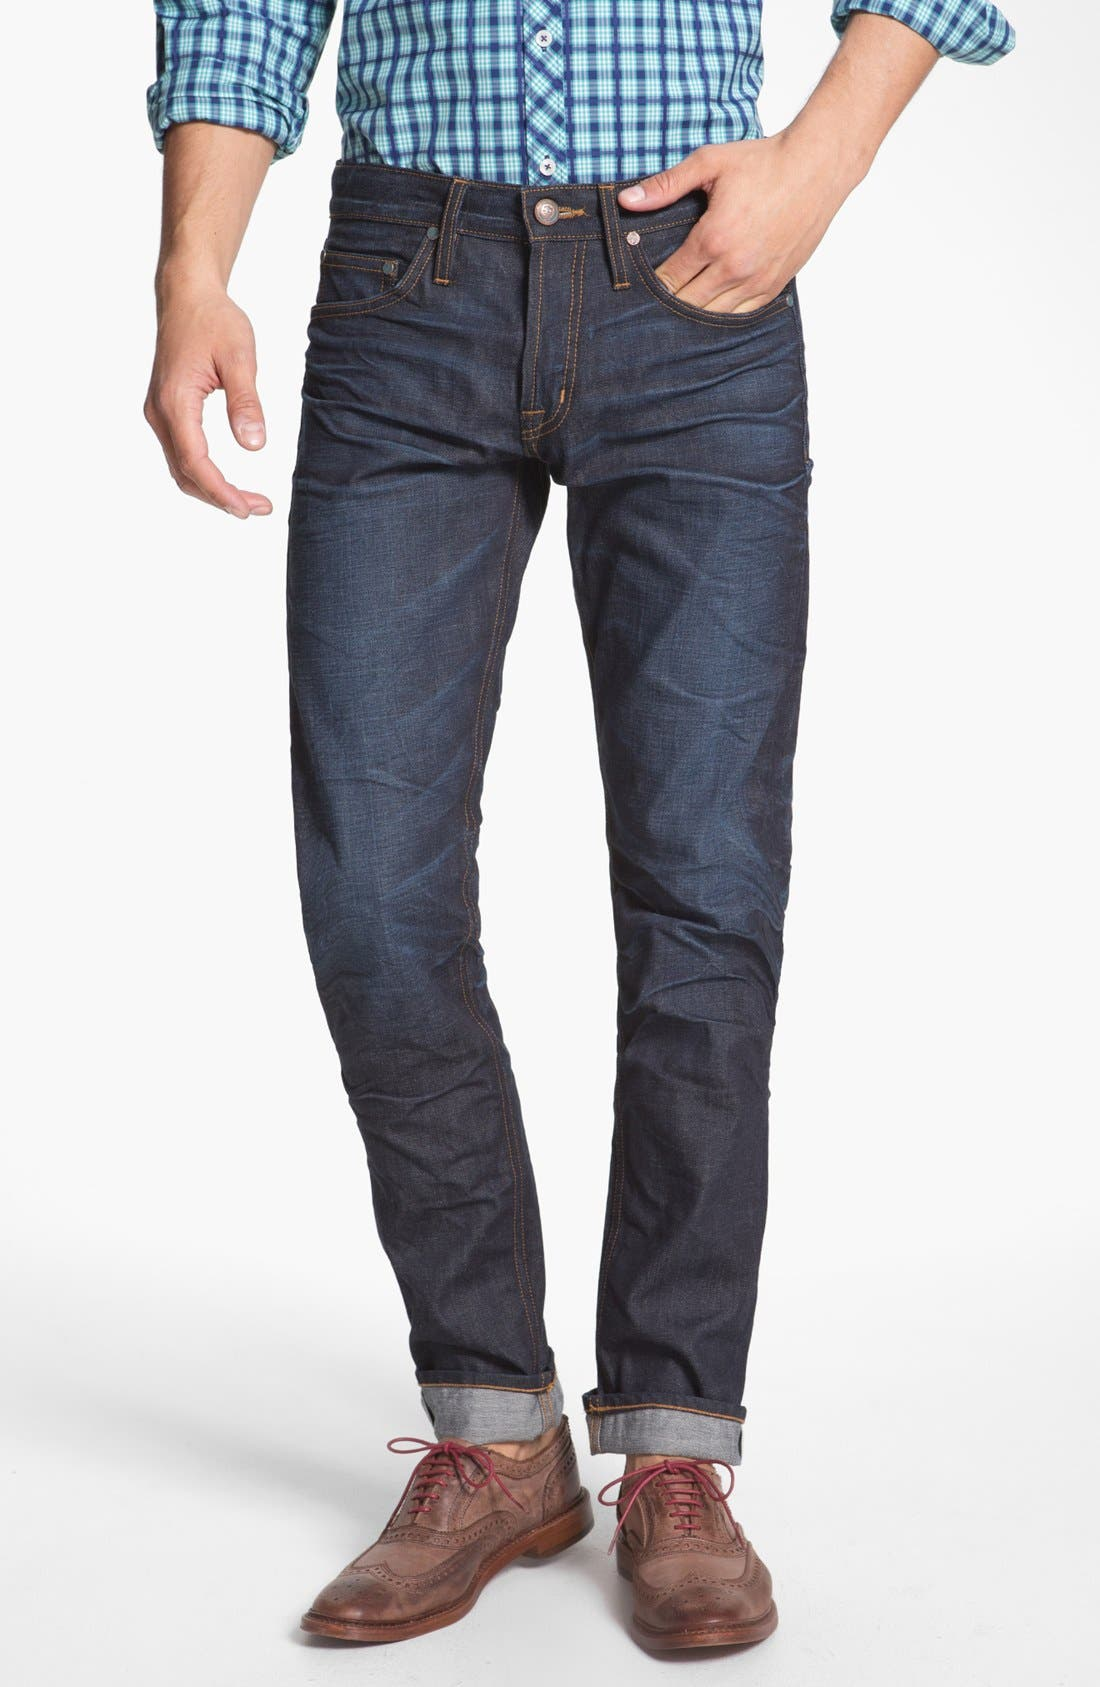 ASBURY PARK '1888 Skinny Fit' Raw Selvedge Jeans, Main, color, 401